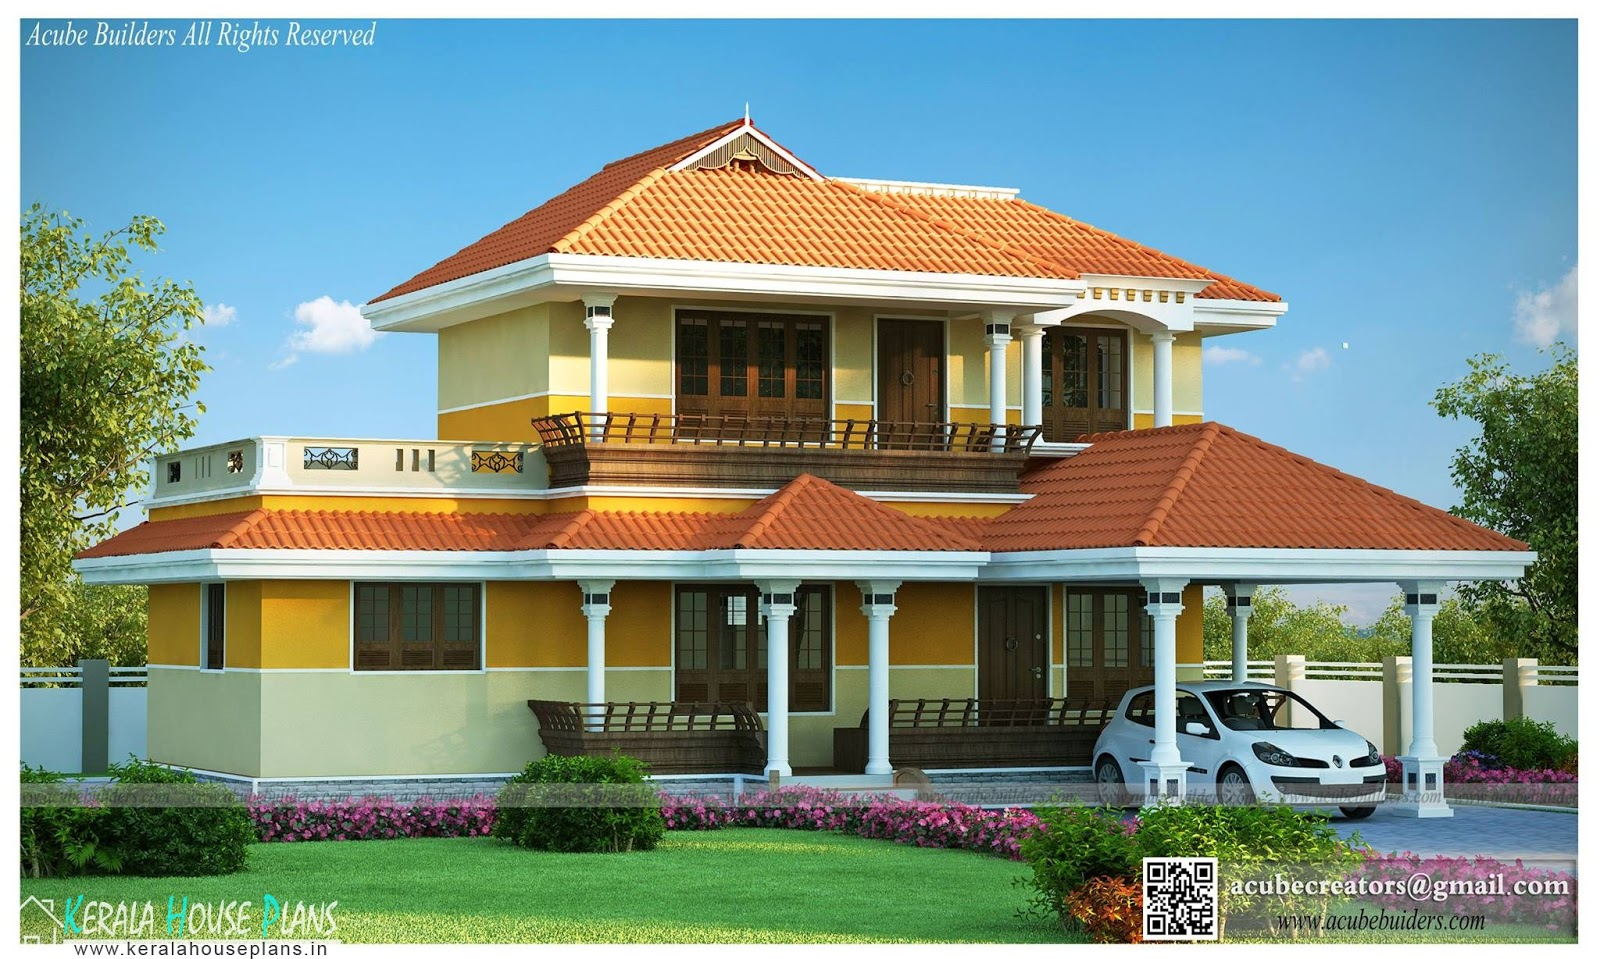 Traditional house plans in kerala kerala house plans for Kerala traditional home plans with photos